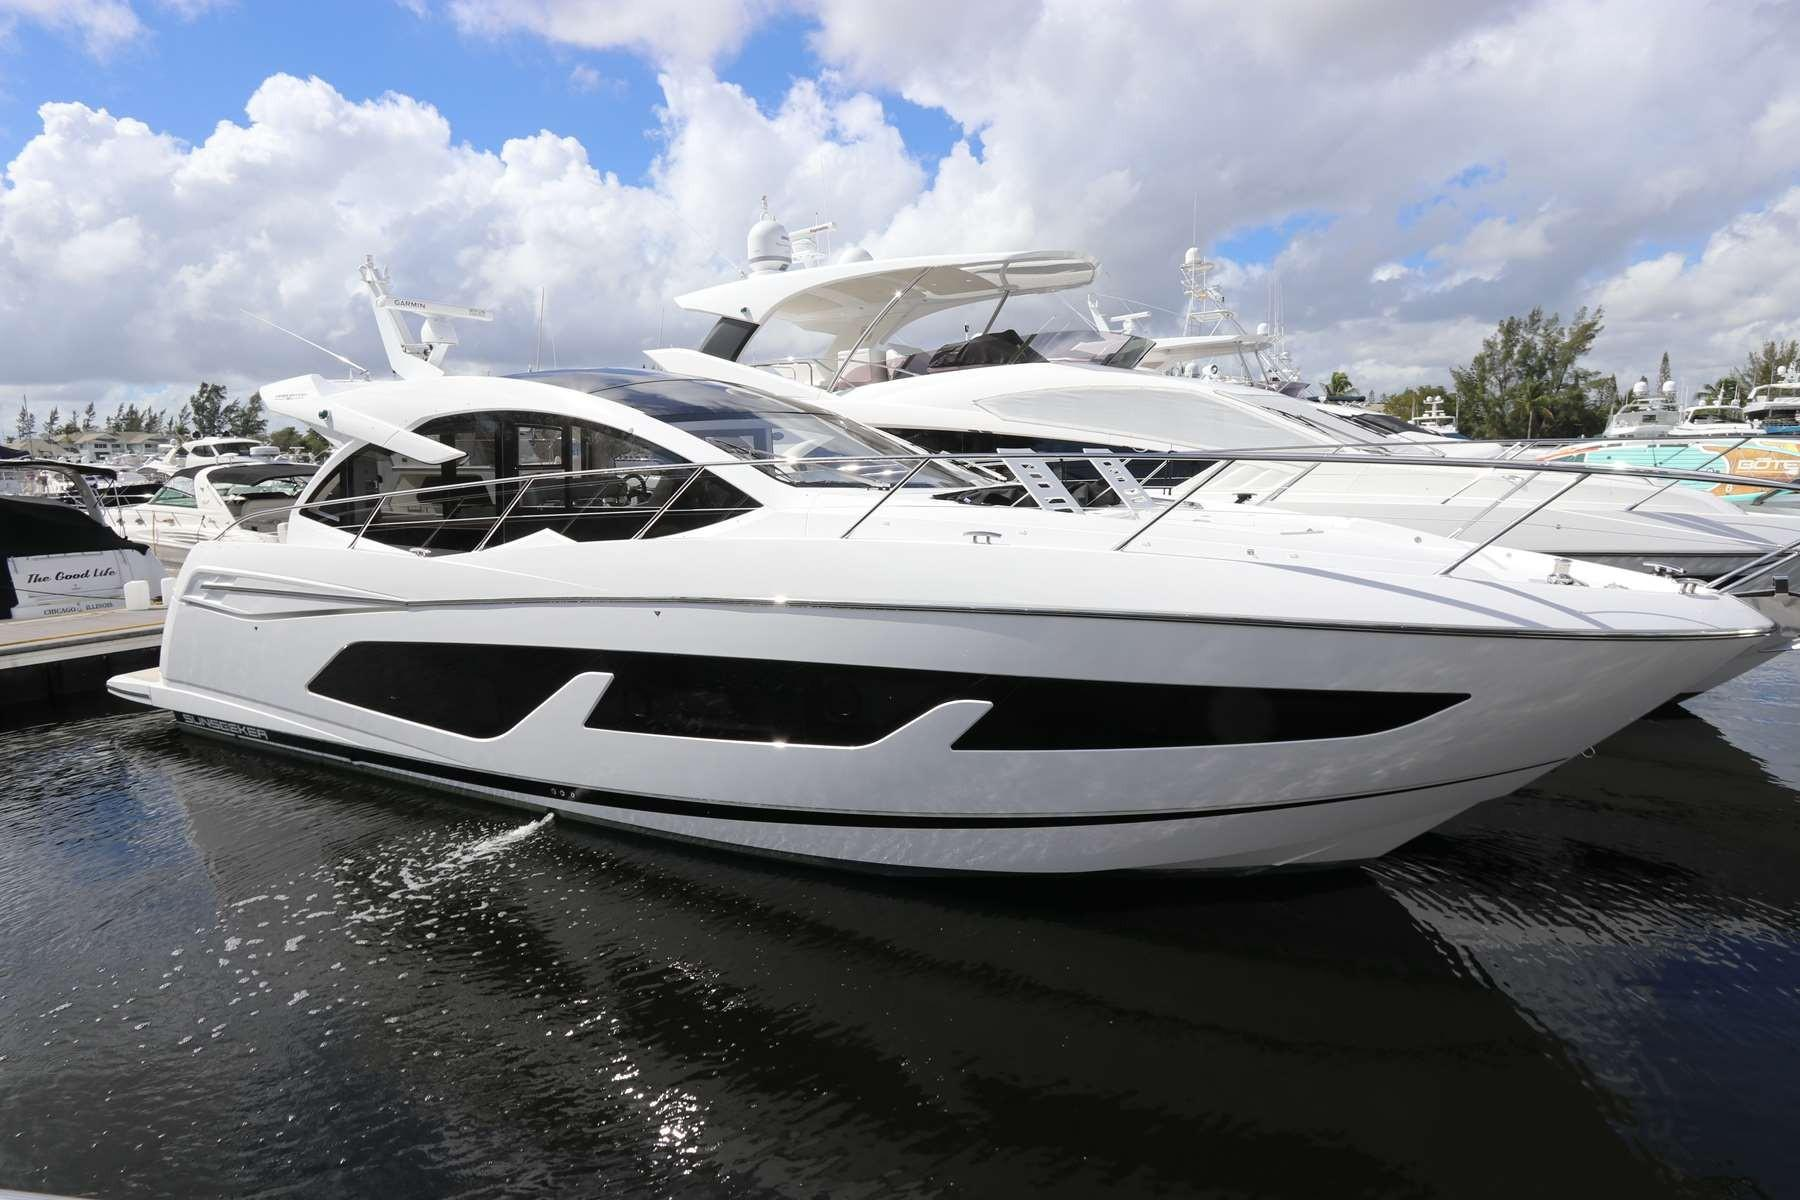 40*50 All Used Yachts For Sale From 40 To 50